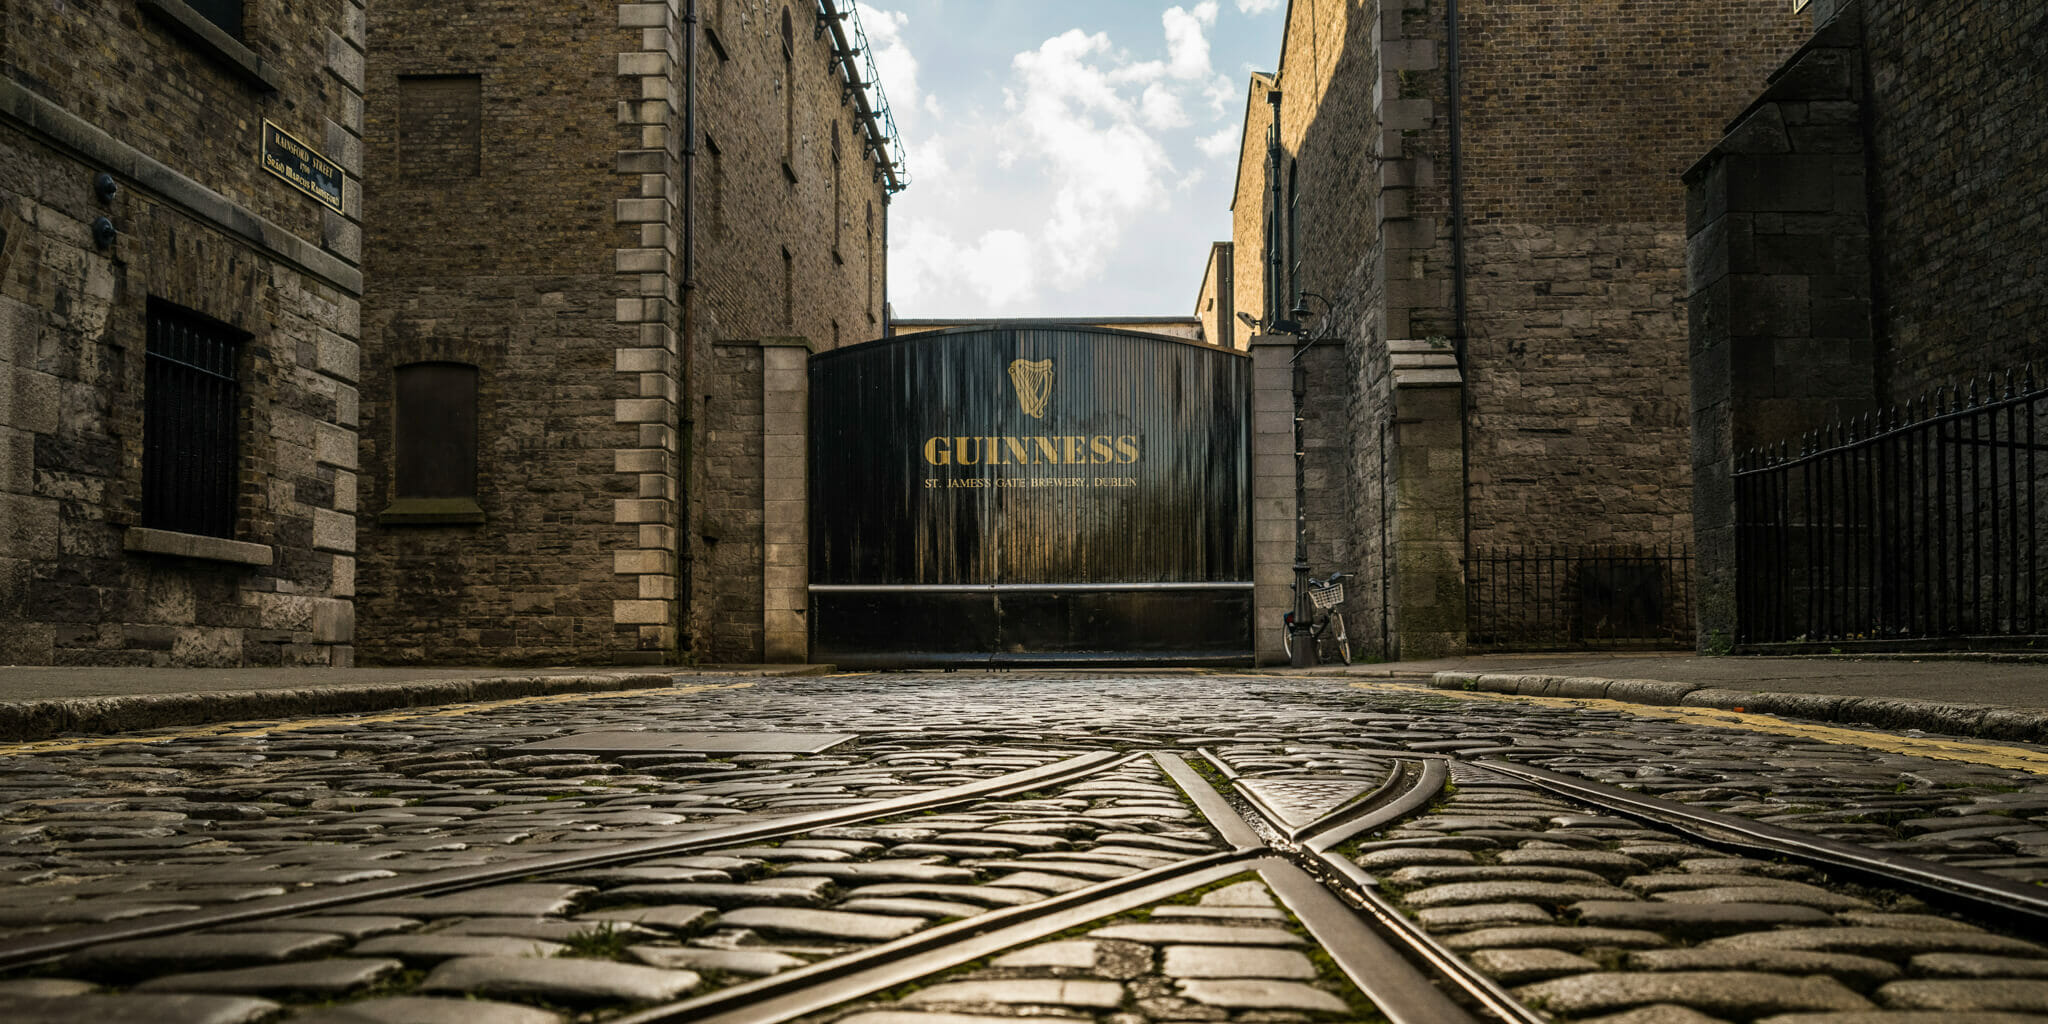 External view of Dublin's Guinness Storehouse